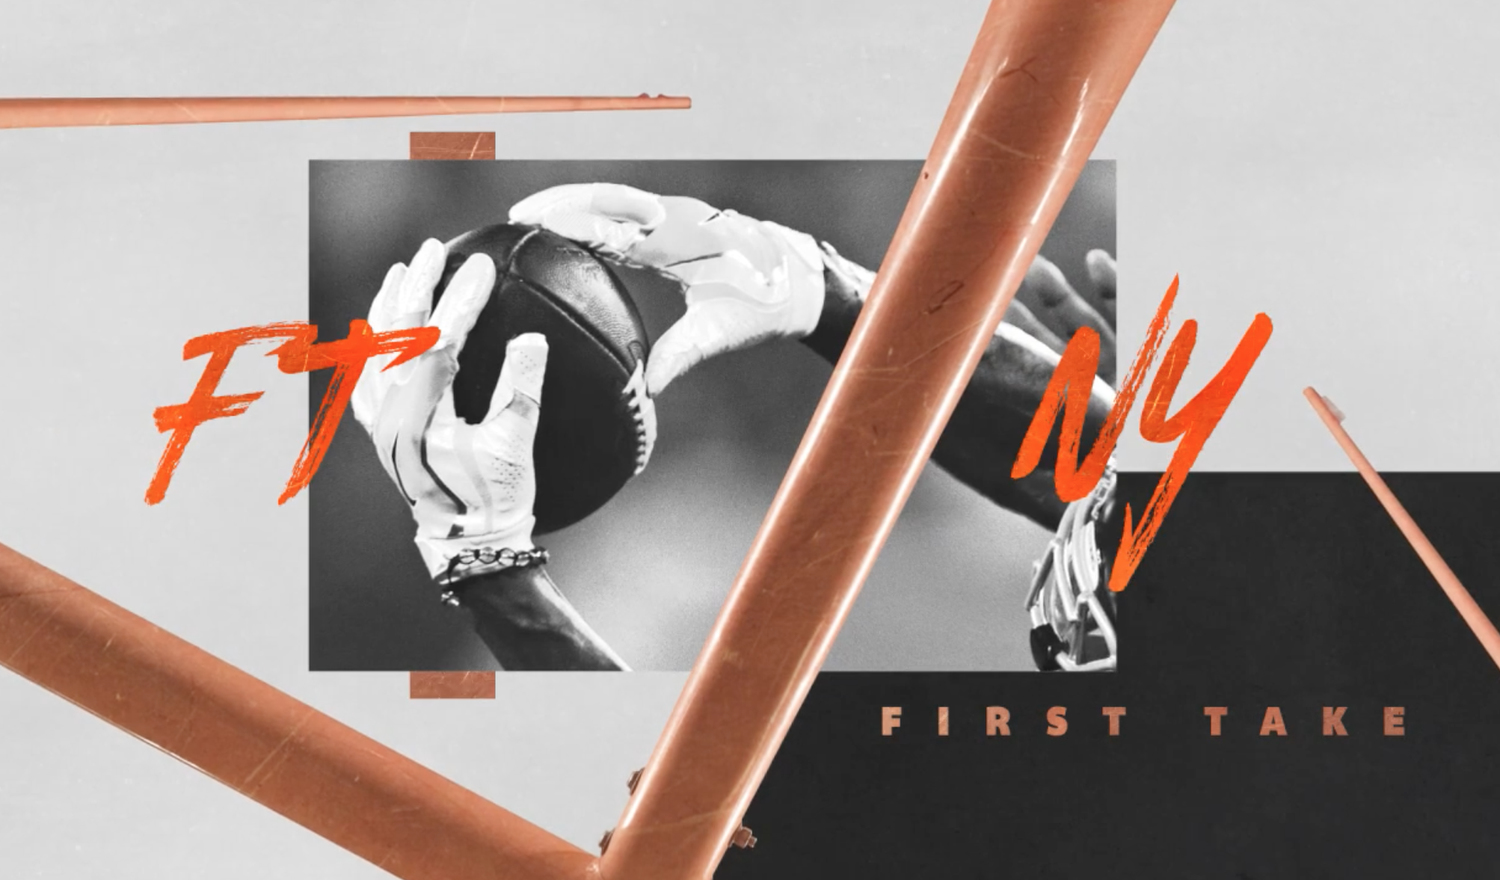 NCS_ESPN-First-Take-motion-graphics_0044